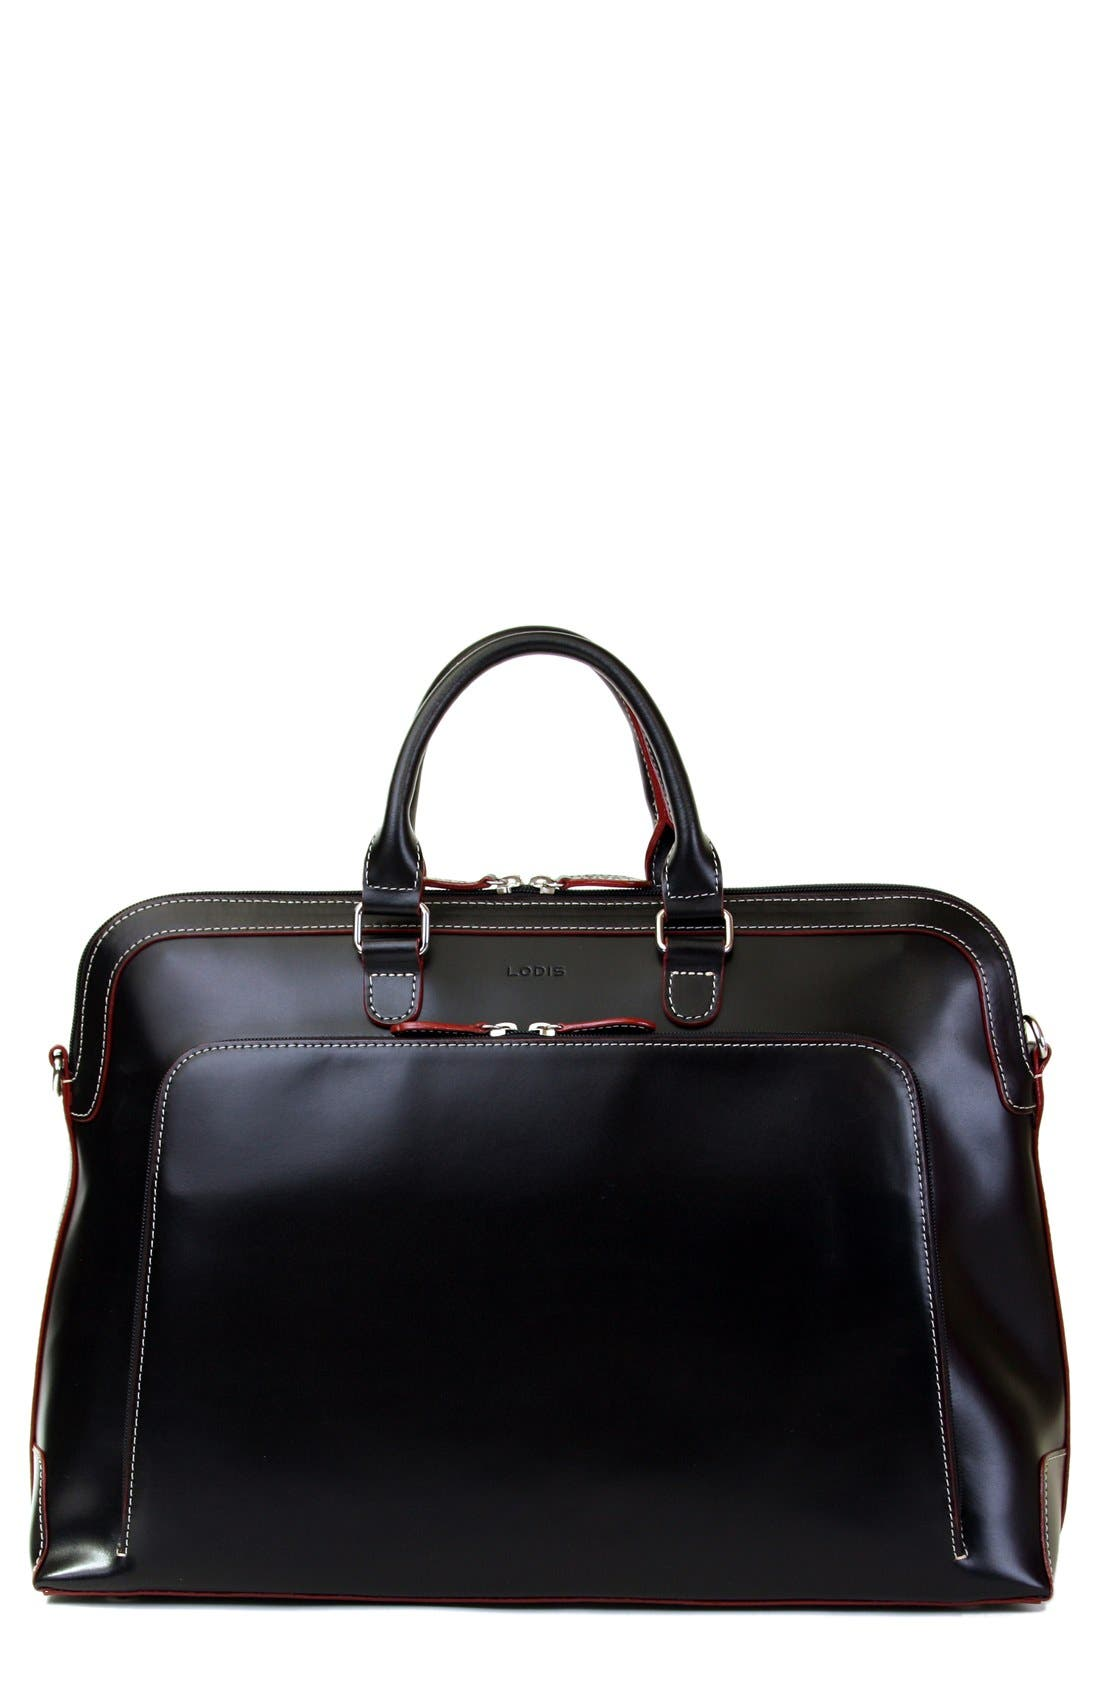 LODIS 'Audrey Brera' Leather Briefcase